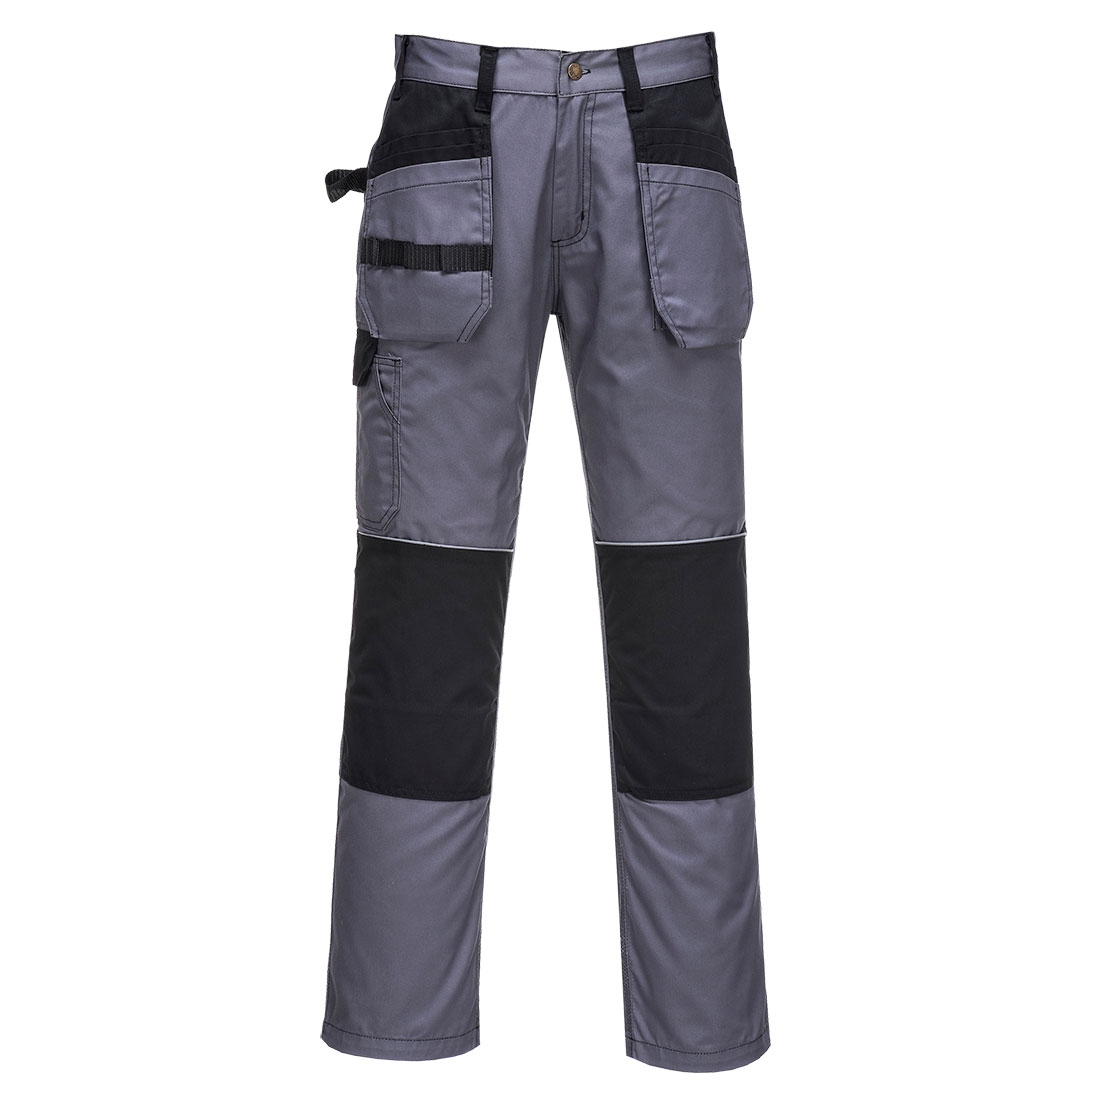 Tradesman Holster Trousers Graphite 38R